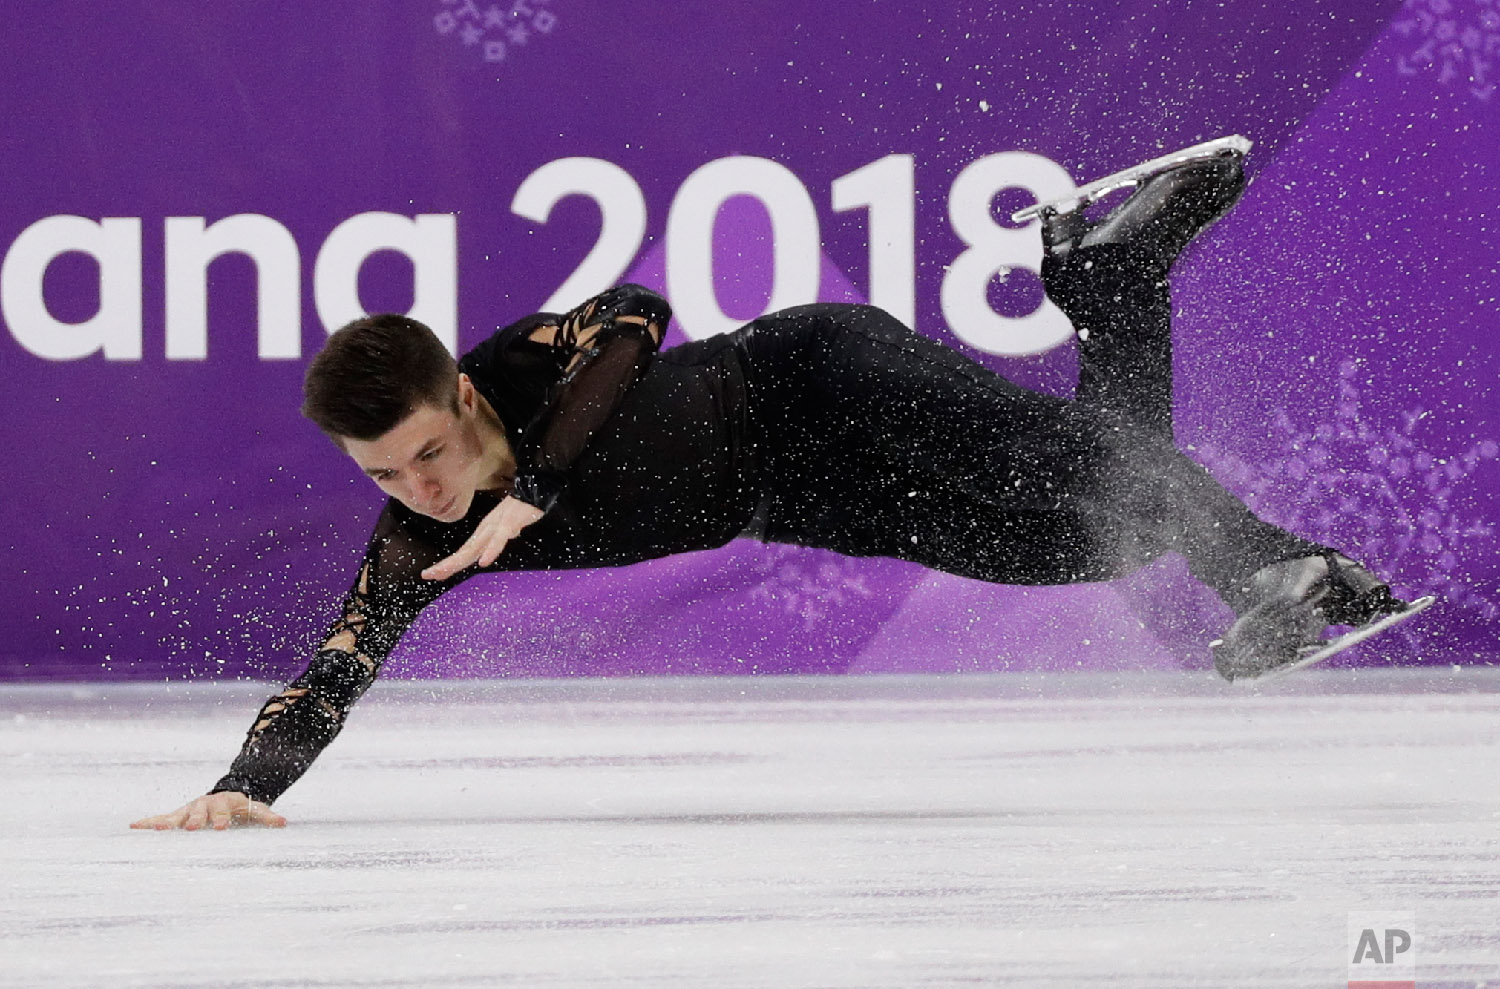 Yaroslav Paniot of Ukraine falls while performing in the men's short program figure skating in the Gangneung Ice Arena at the 2018 Winter Olympics in Gangneung, South Korea, Friday, Feb. 16, 2018. (AP Photo/David J. Phillip)